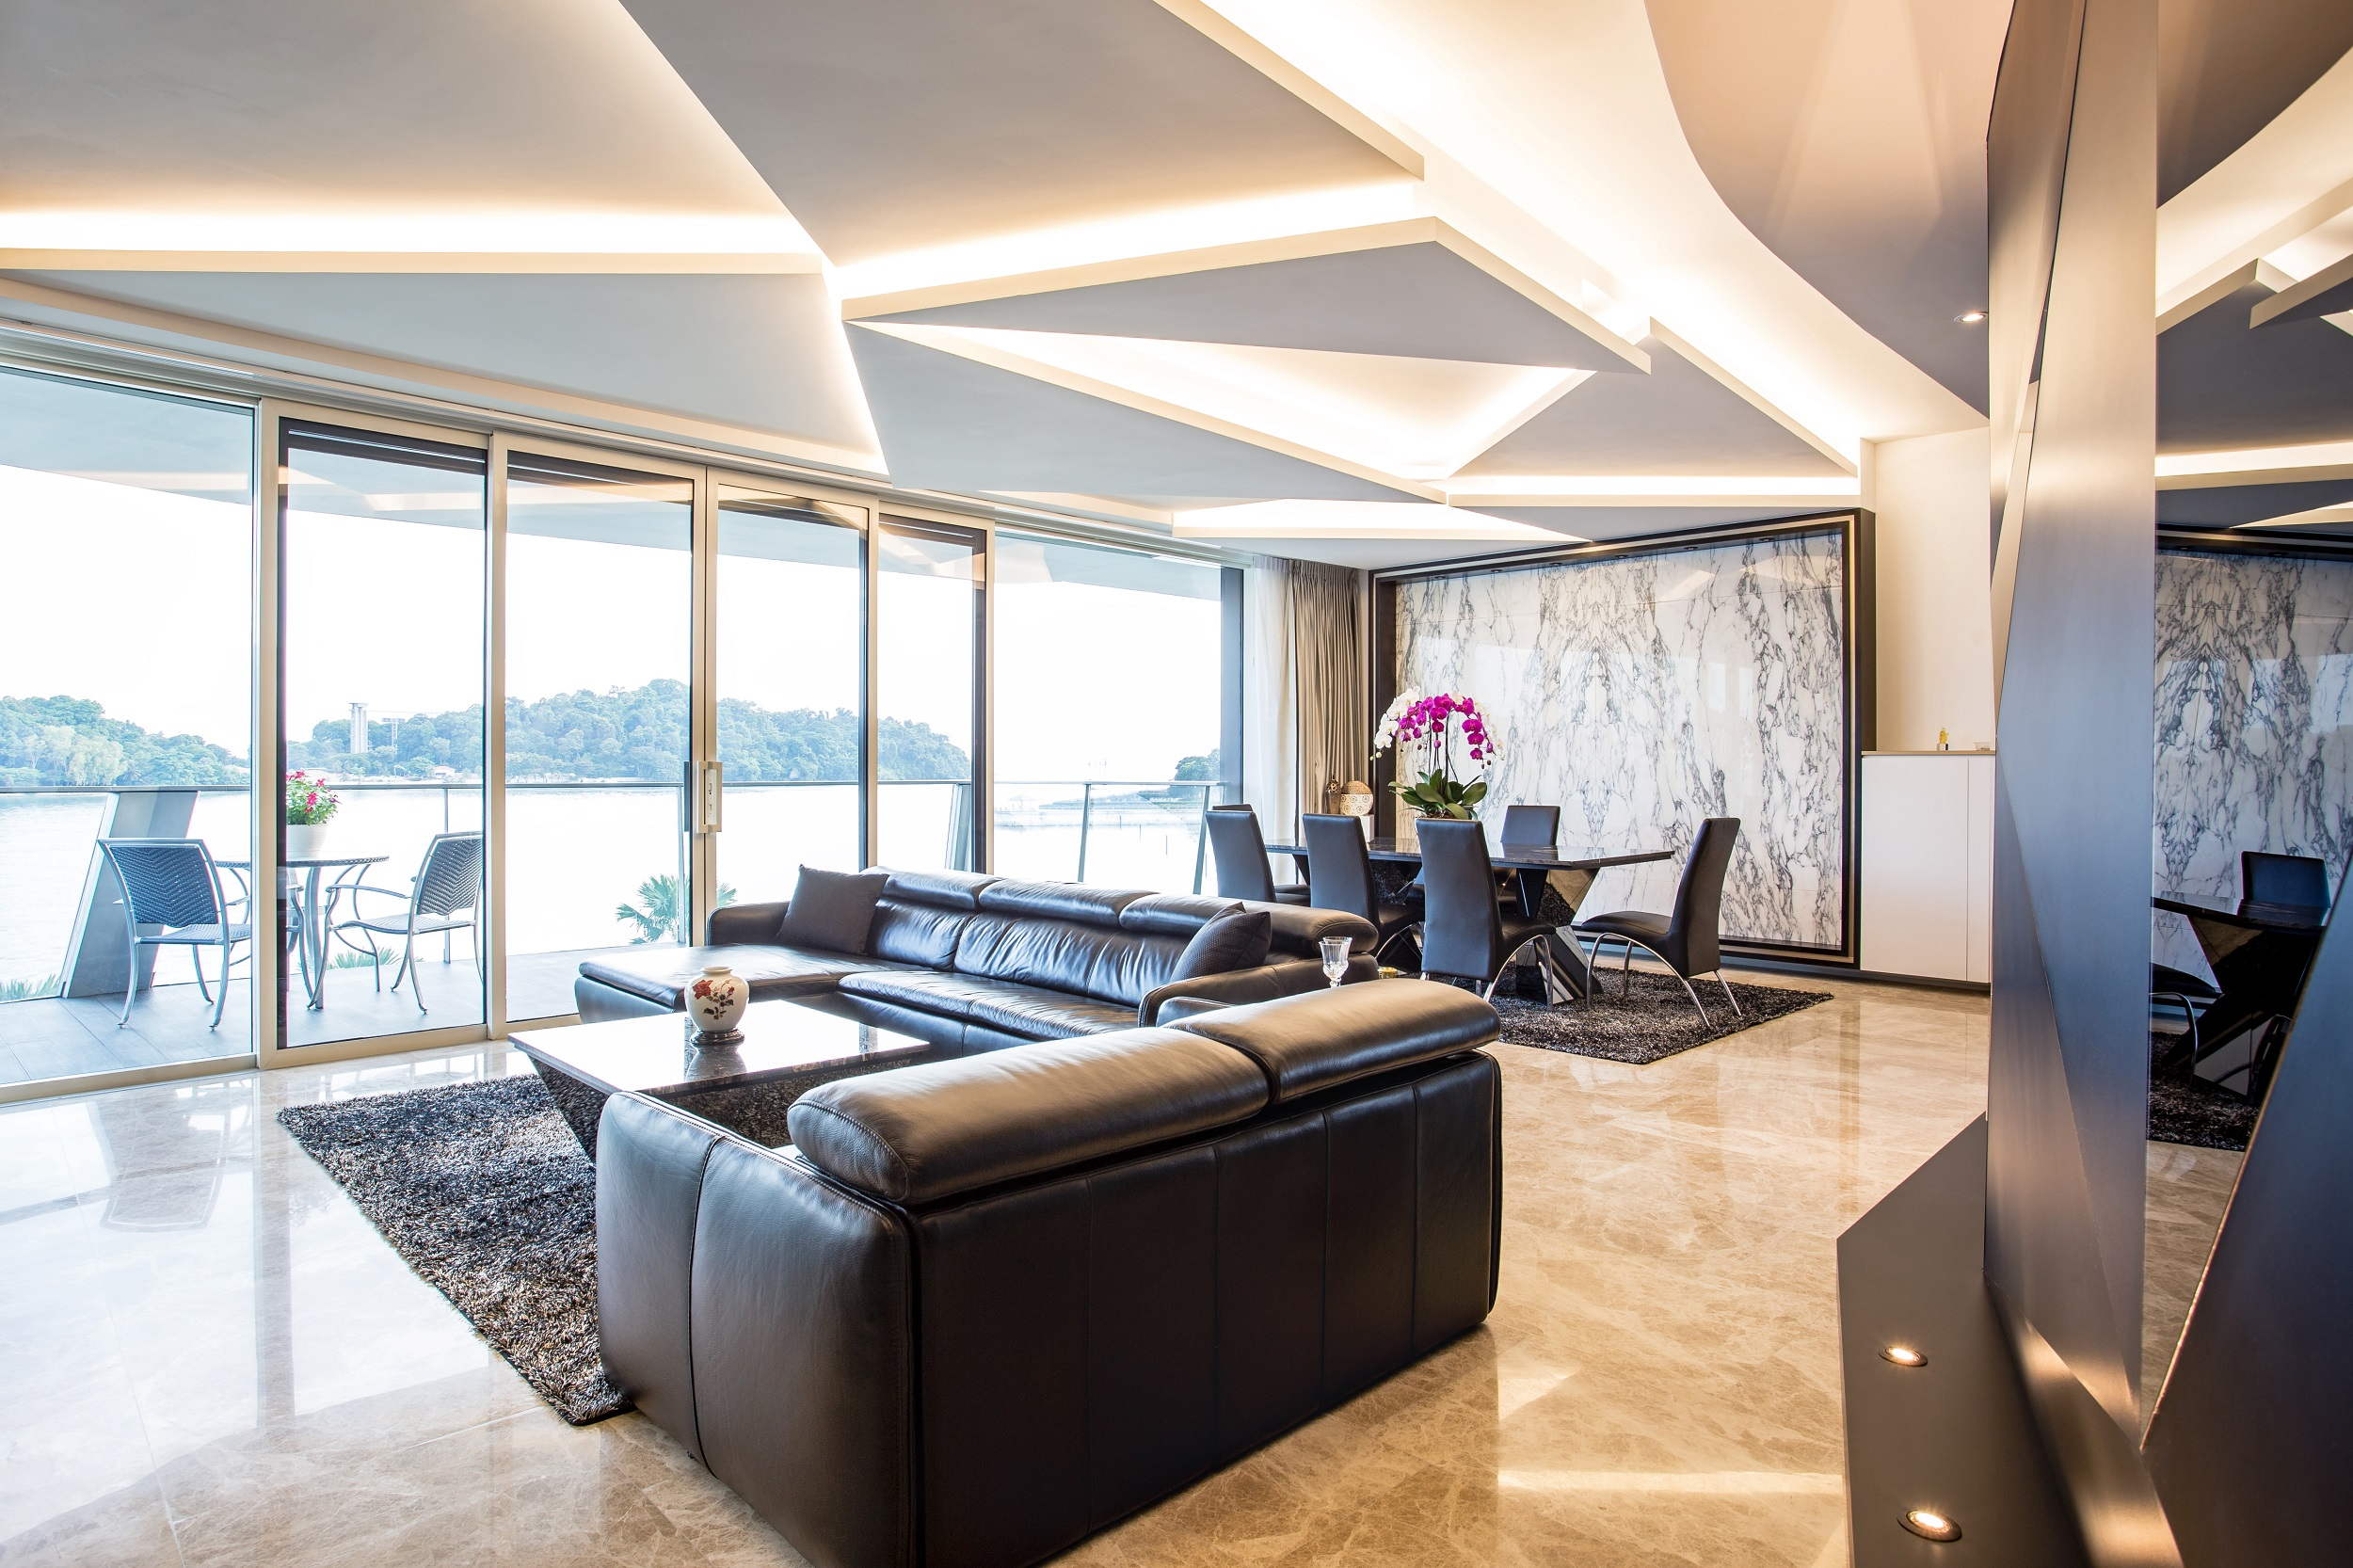 Design Firms In Singapore Interior Design Firm Singapore Modern Interior At Its Finest